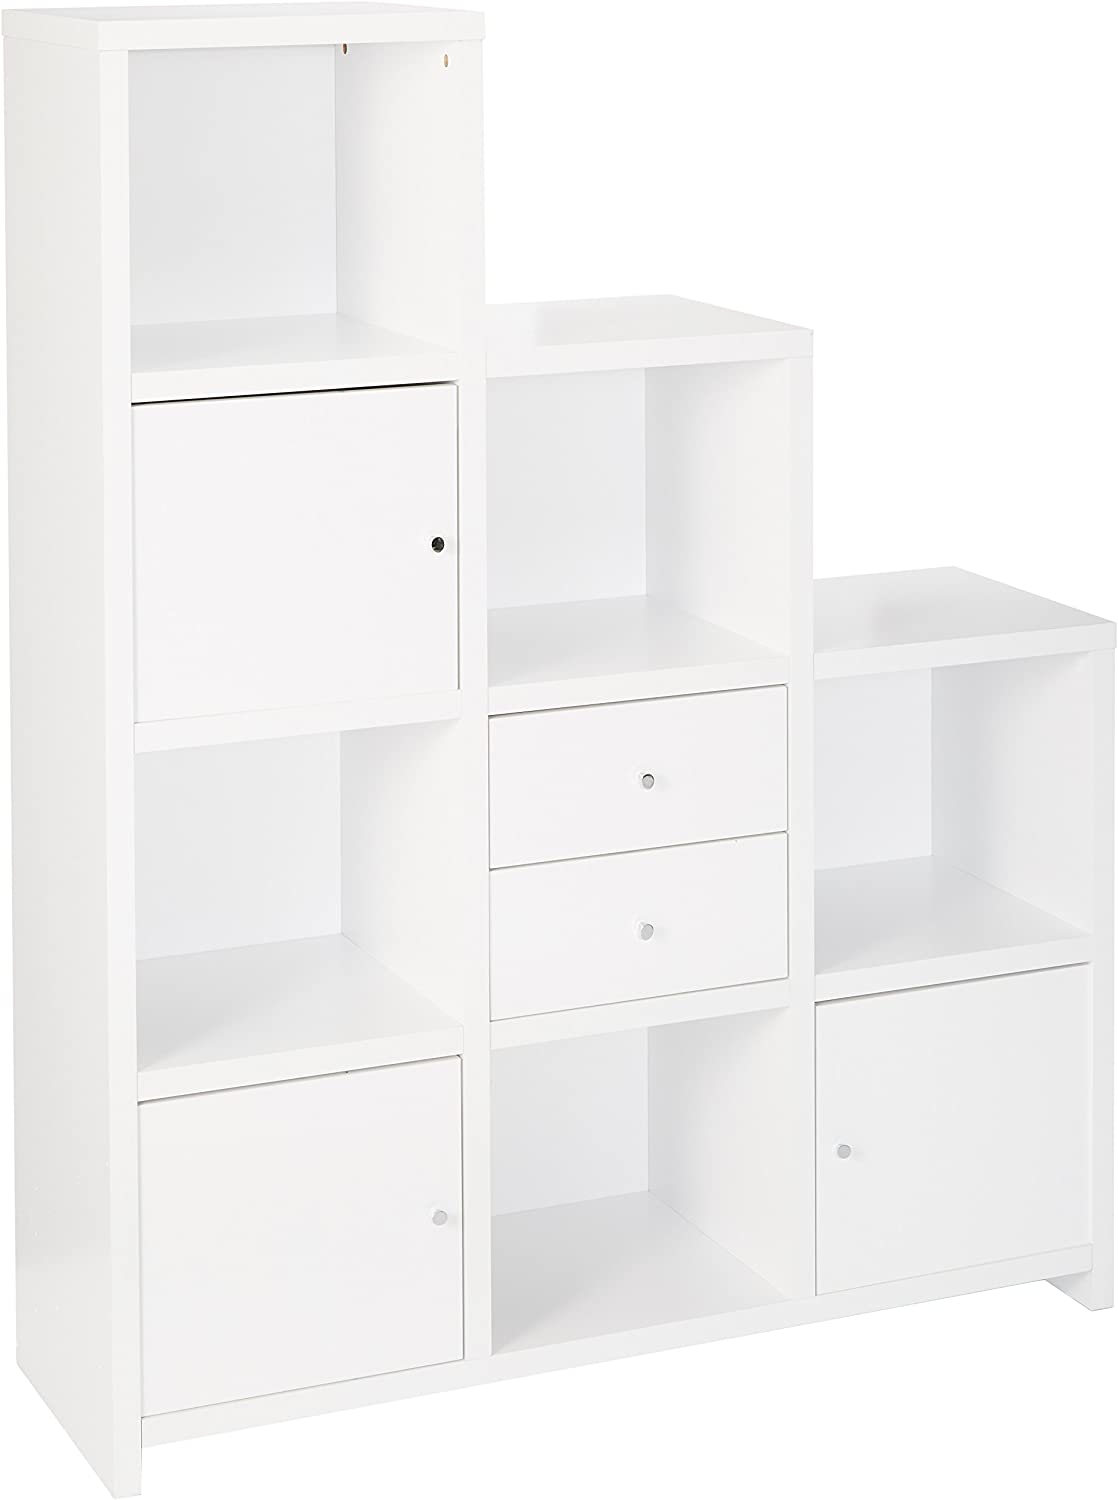 Coaster Home Furnishings Asymmetrical Bookcase with Cube Storage Compartments White